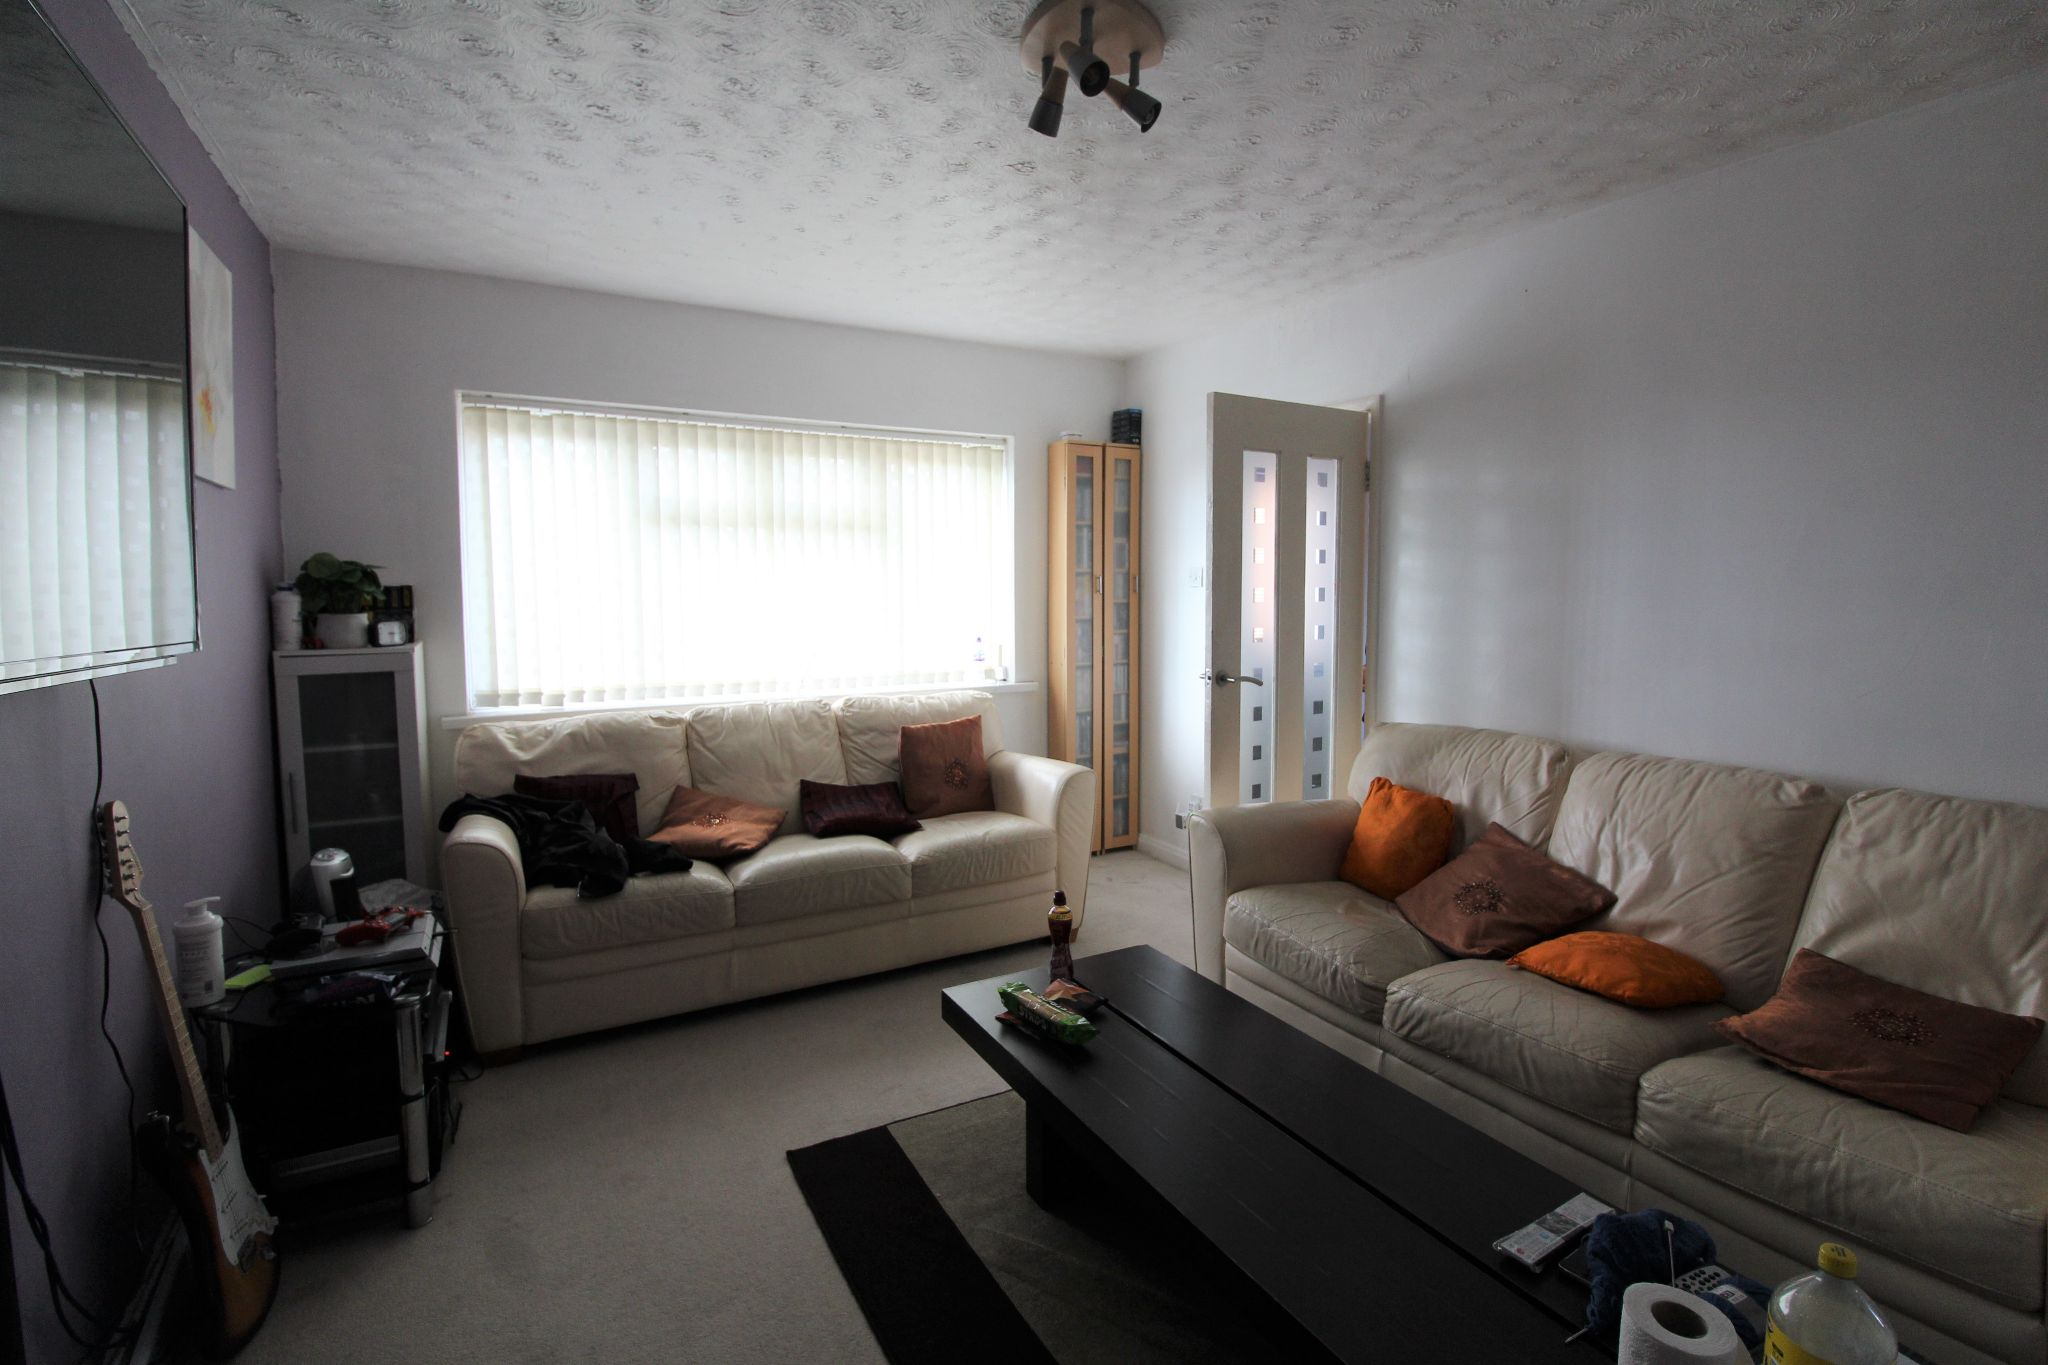 3 bedroom detached house For Sale in Durham - Photograph 15.